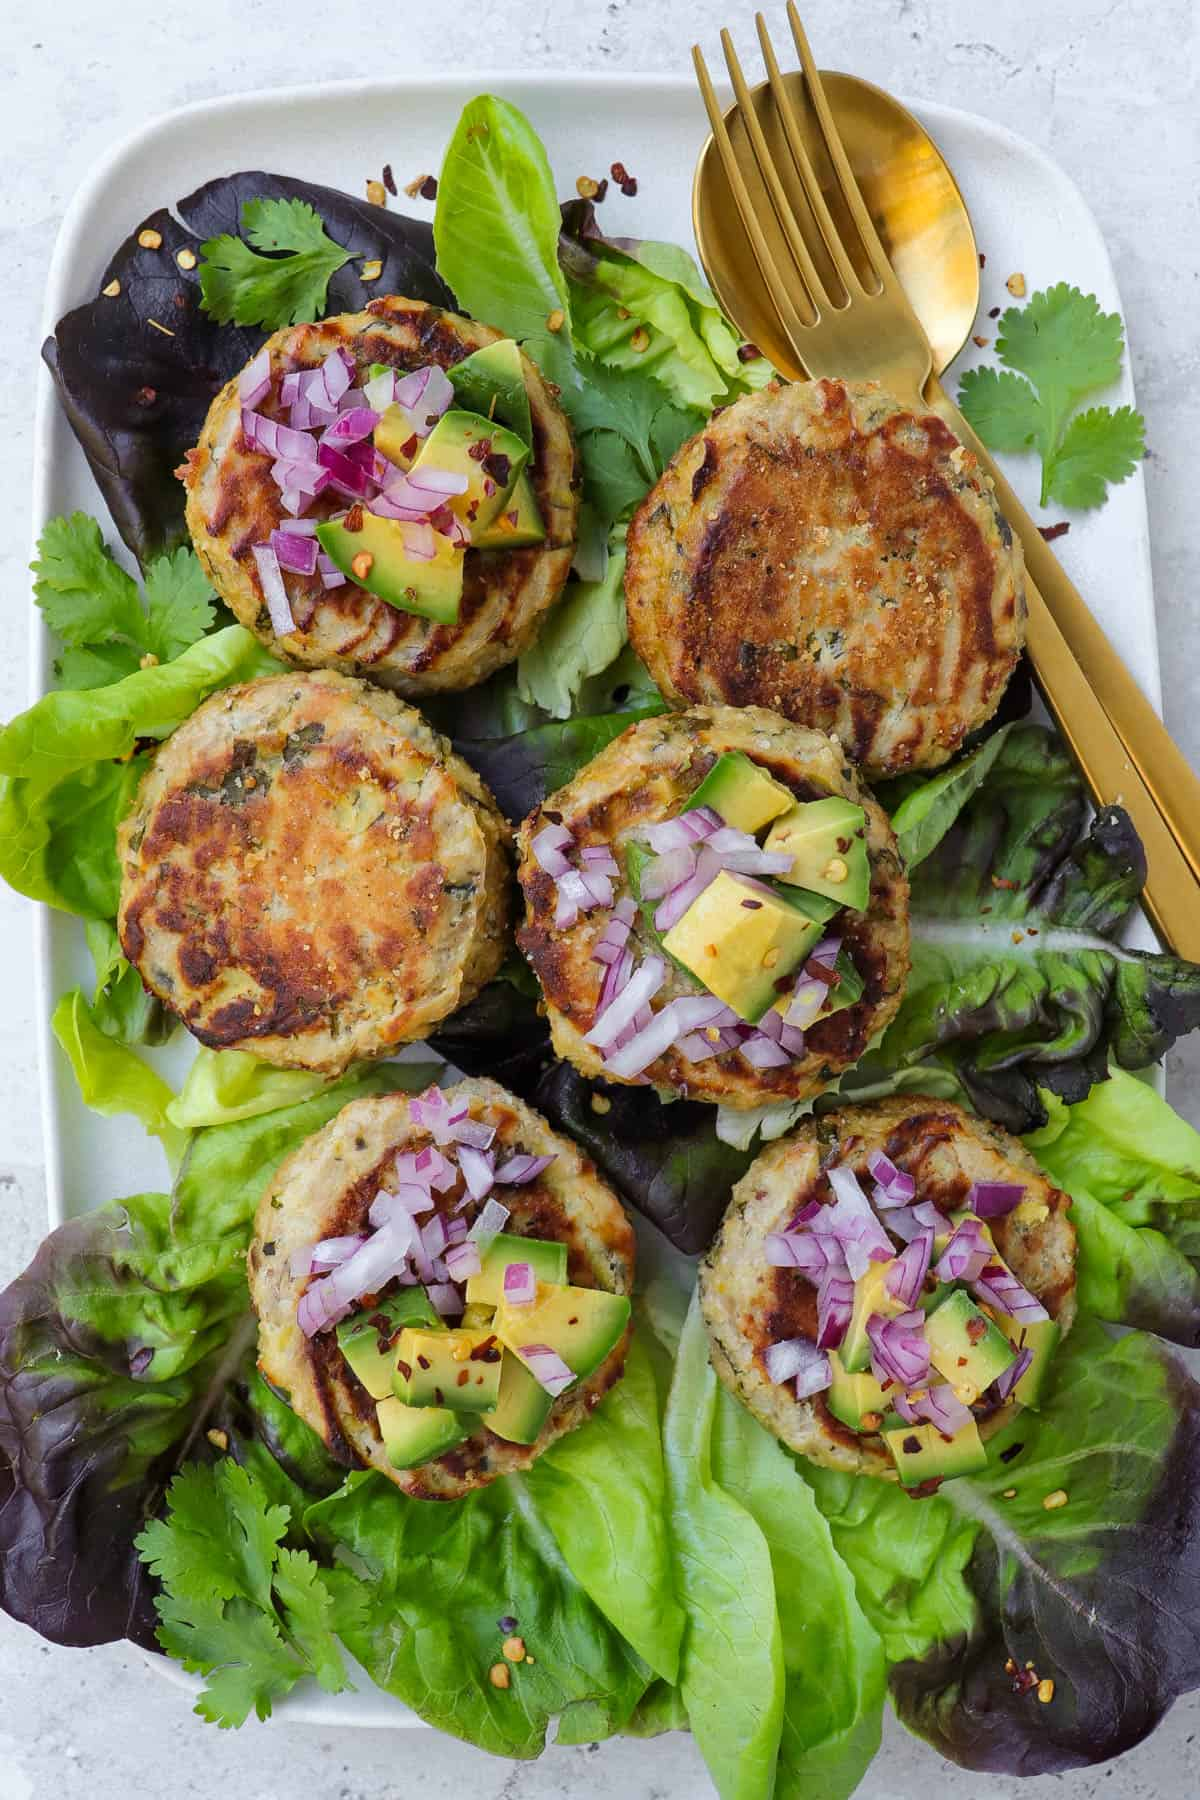 Tuna cakes on lettuce leaves with chopped avocado, red onion and chili flakes on top of each one. Gold cutlery on the side.